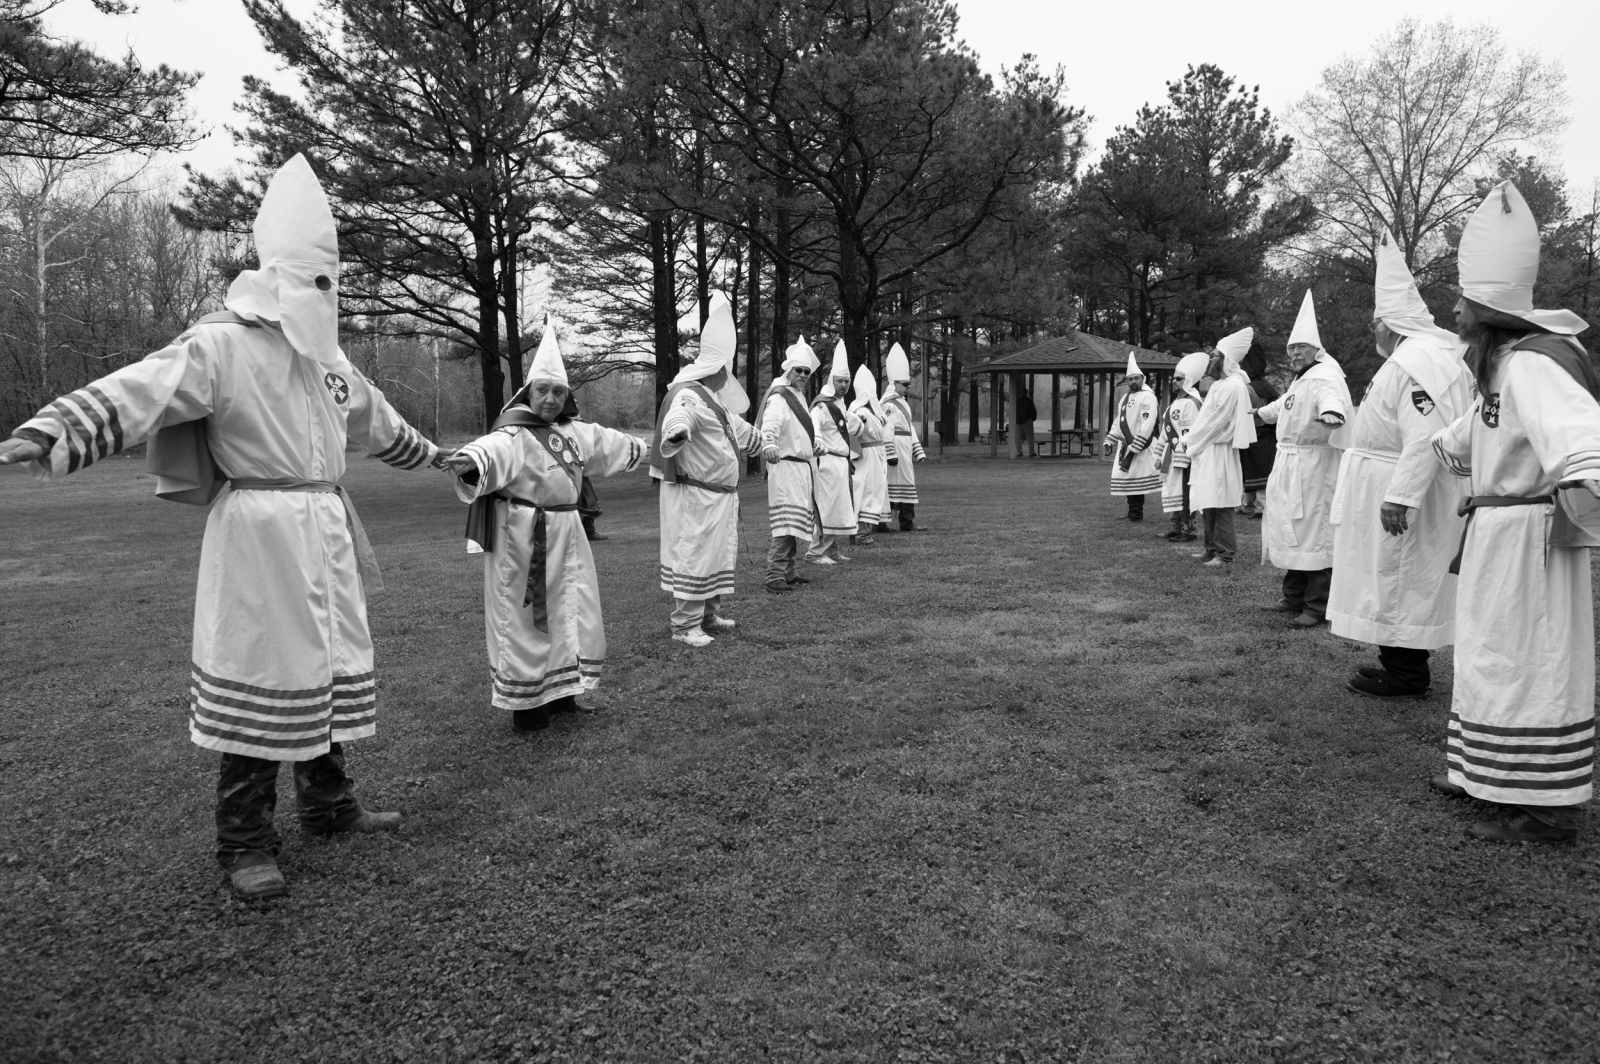 Missouri. Klan members go into a military-type formation in preparation for a Ku Klux Klan wedding ritual ceremony.